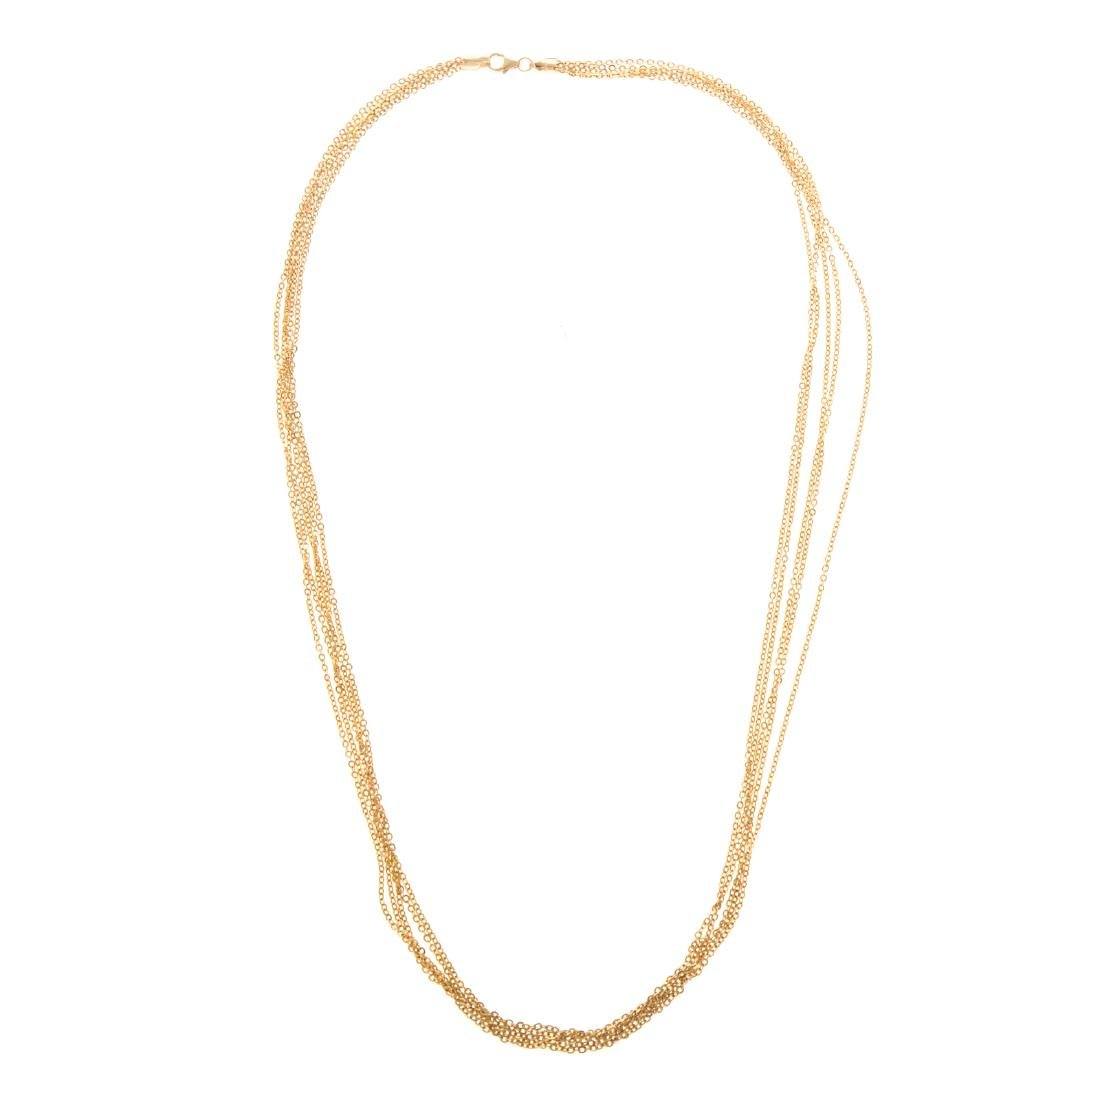 Two Lady's Necklaces in 14K Gold - 3